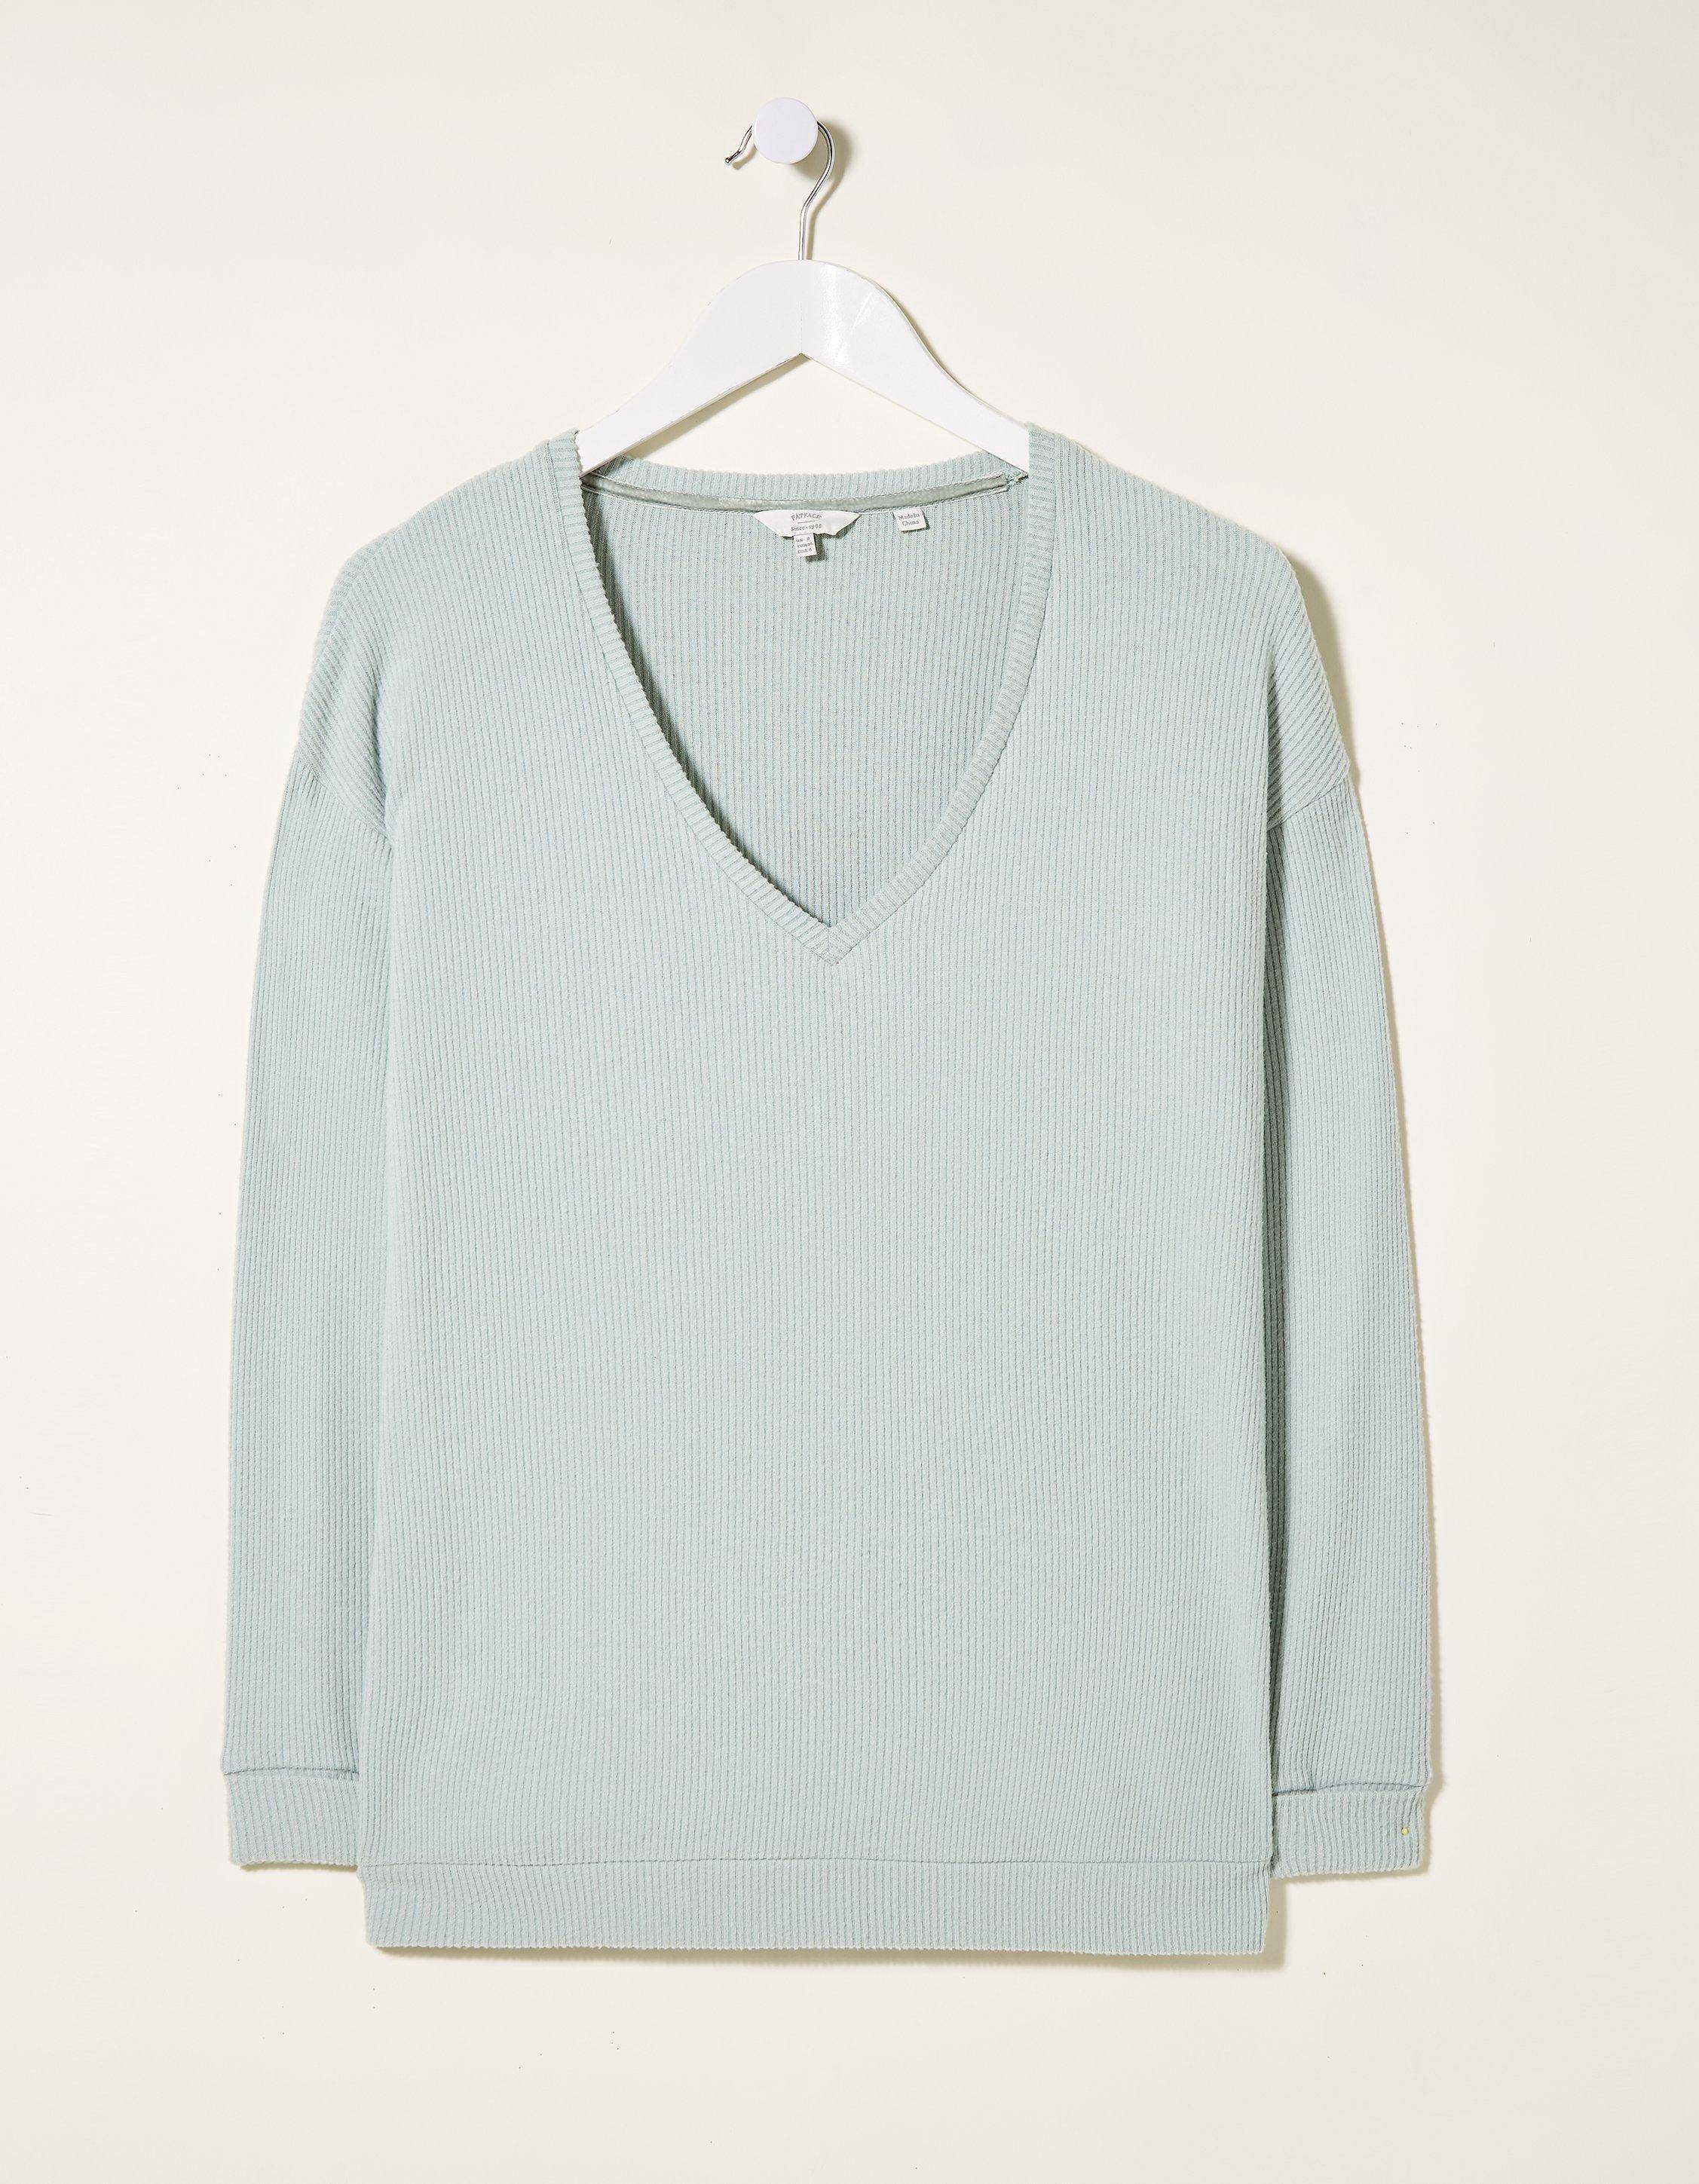 Fat Face Supersoft V Neck Rib Top  - Size: 8